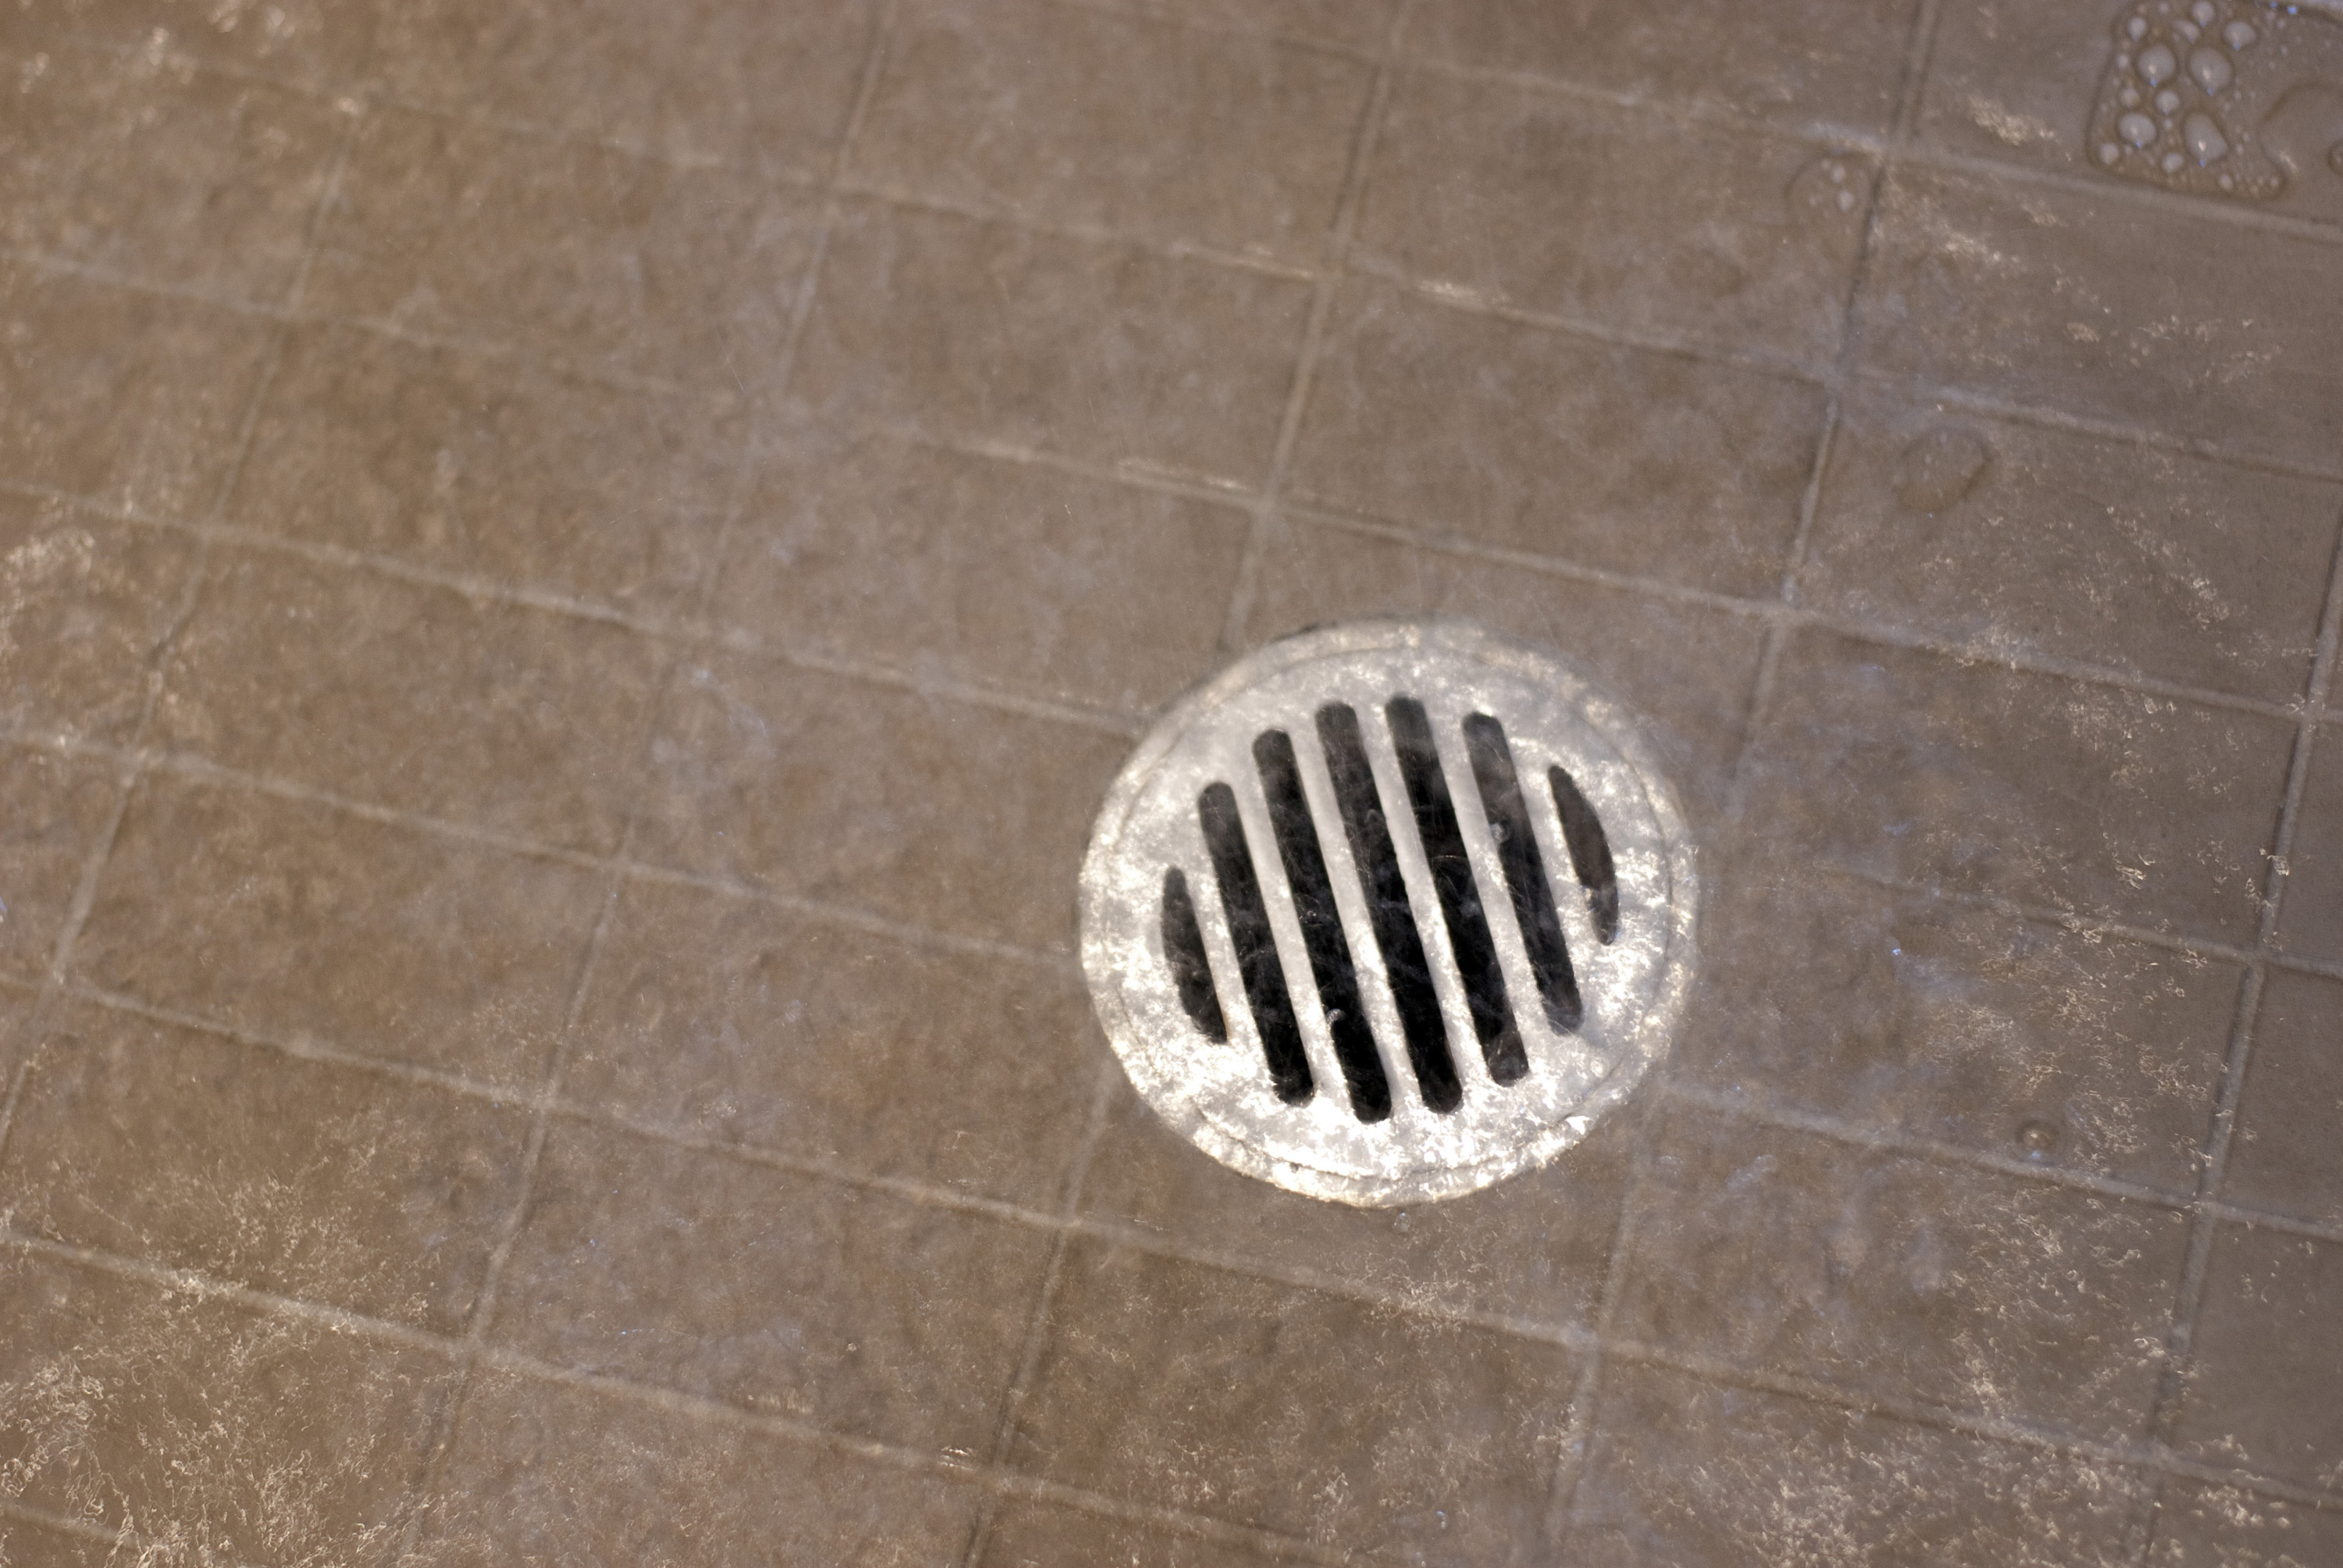 Free Image Of Shower Drain - Bathroom drain